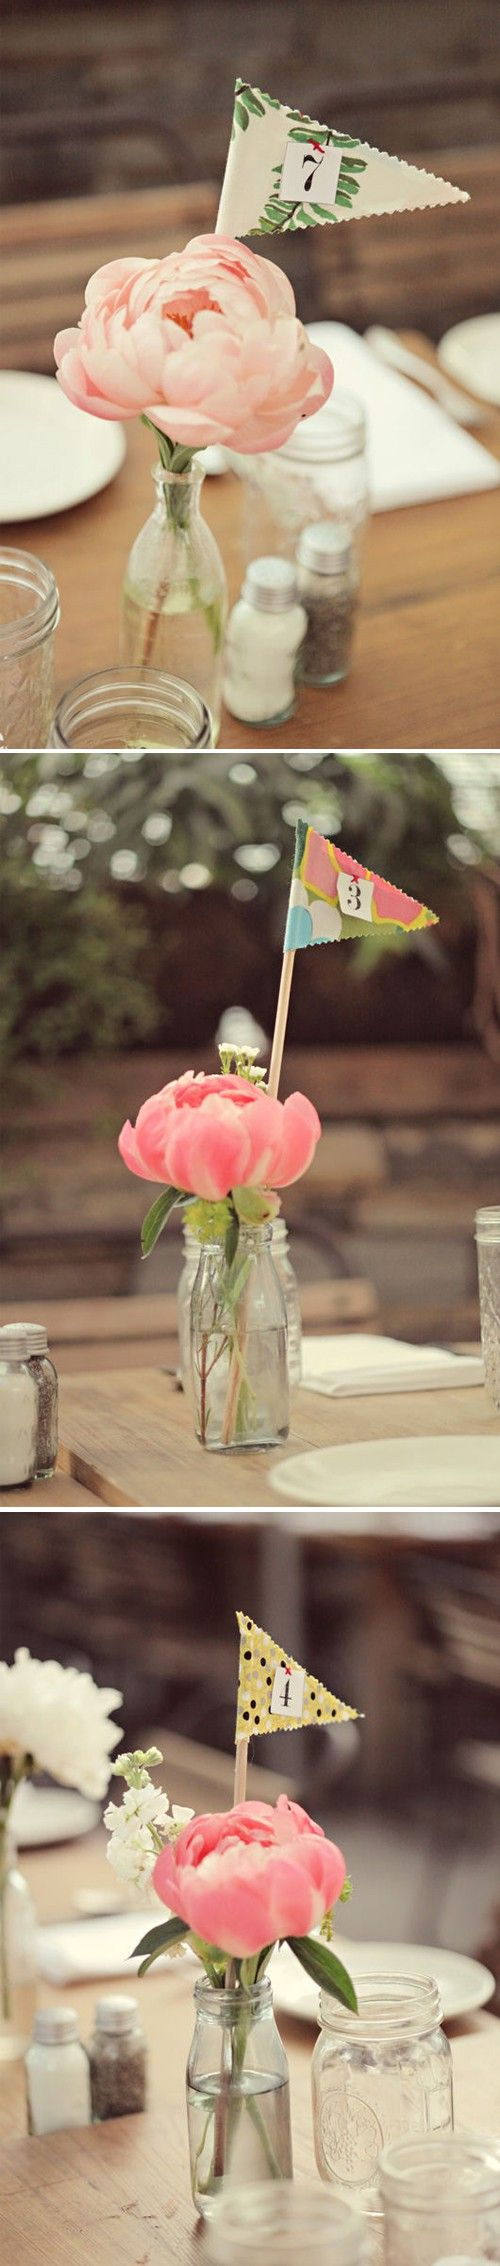 Adorable ideas for centerpieces and table numbers. Relatively cheap and easy to assemble, too.